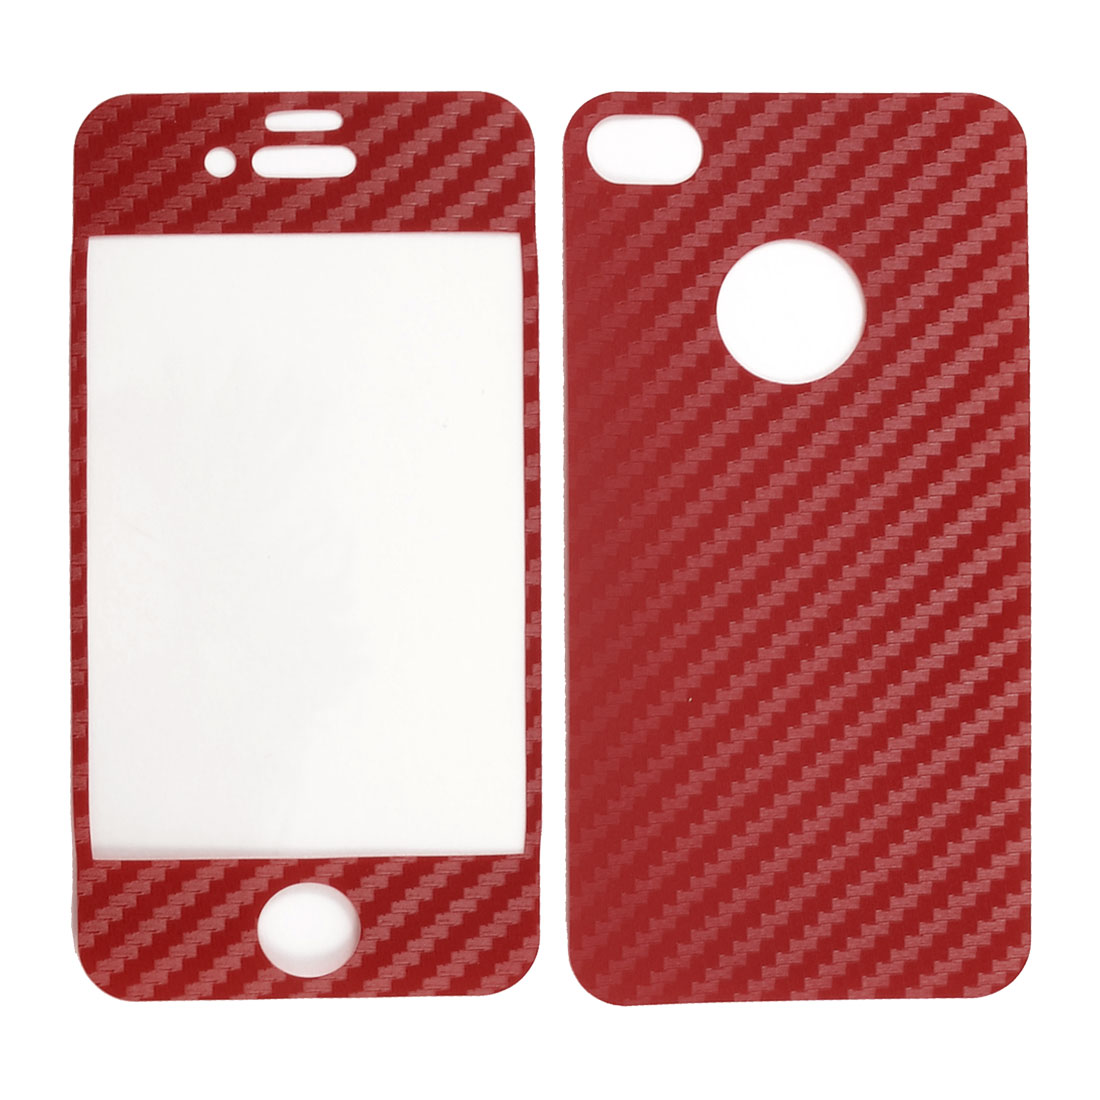 Carbon Fiber Pattern Red Vinyl Front Back Decal Sticker for iPhone 4 4G 4S 4GS